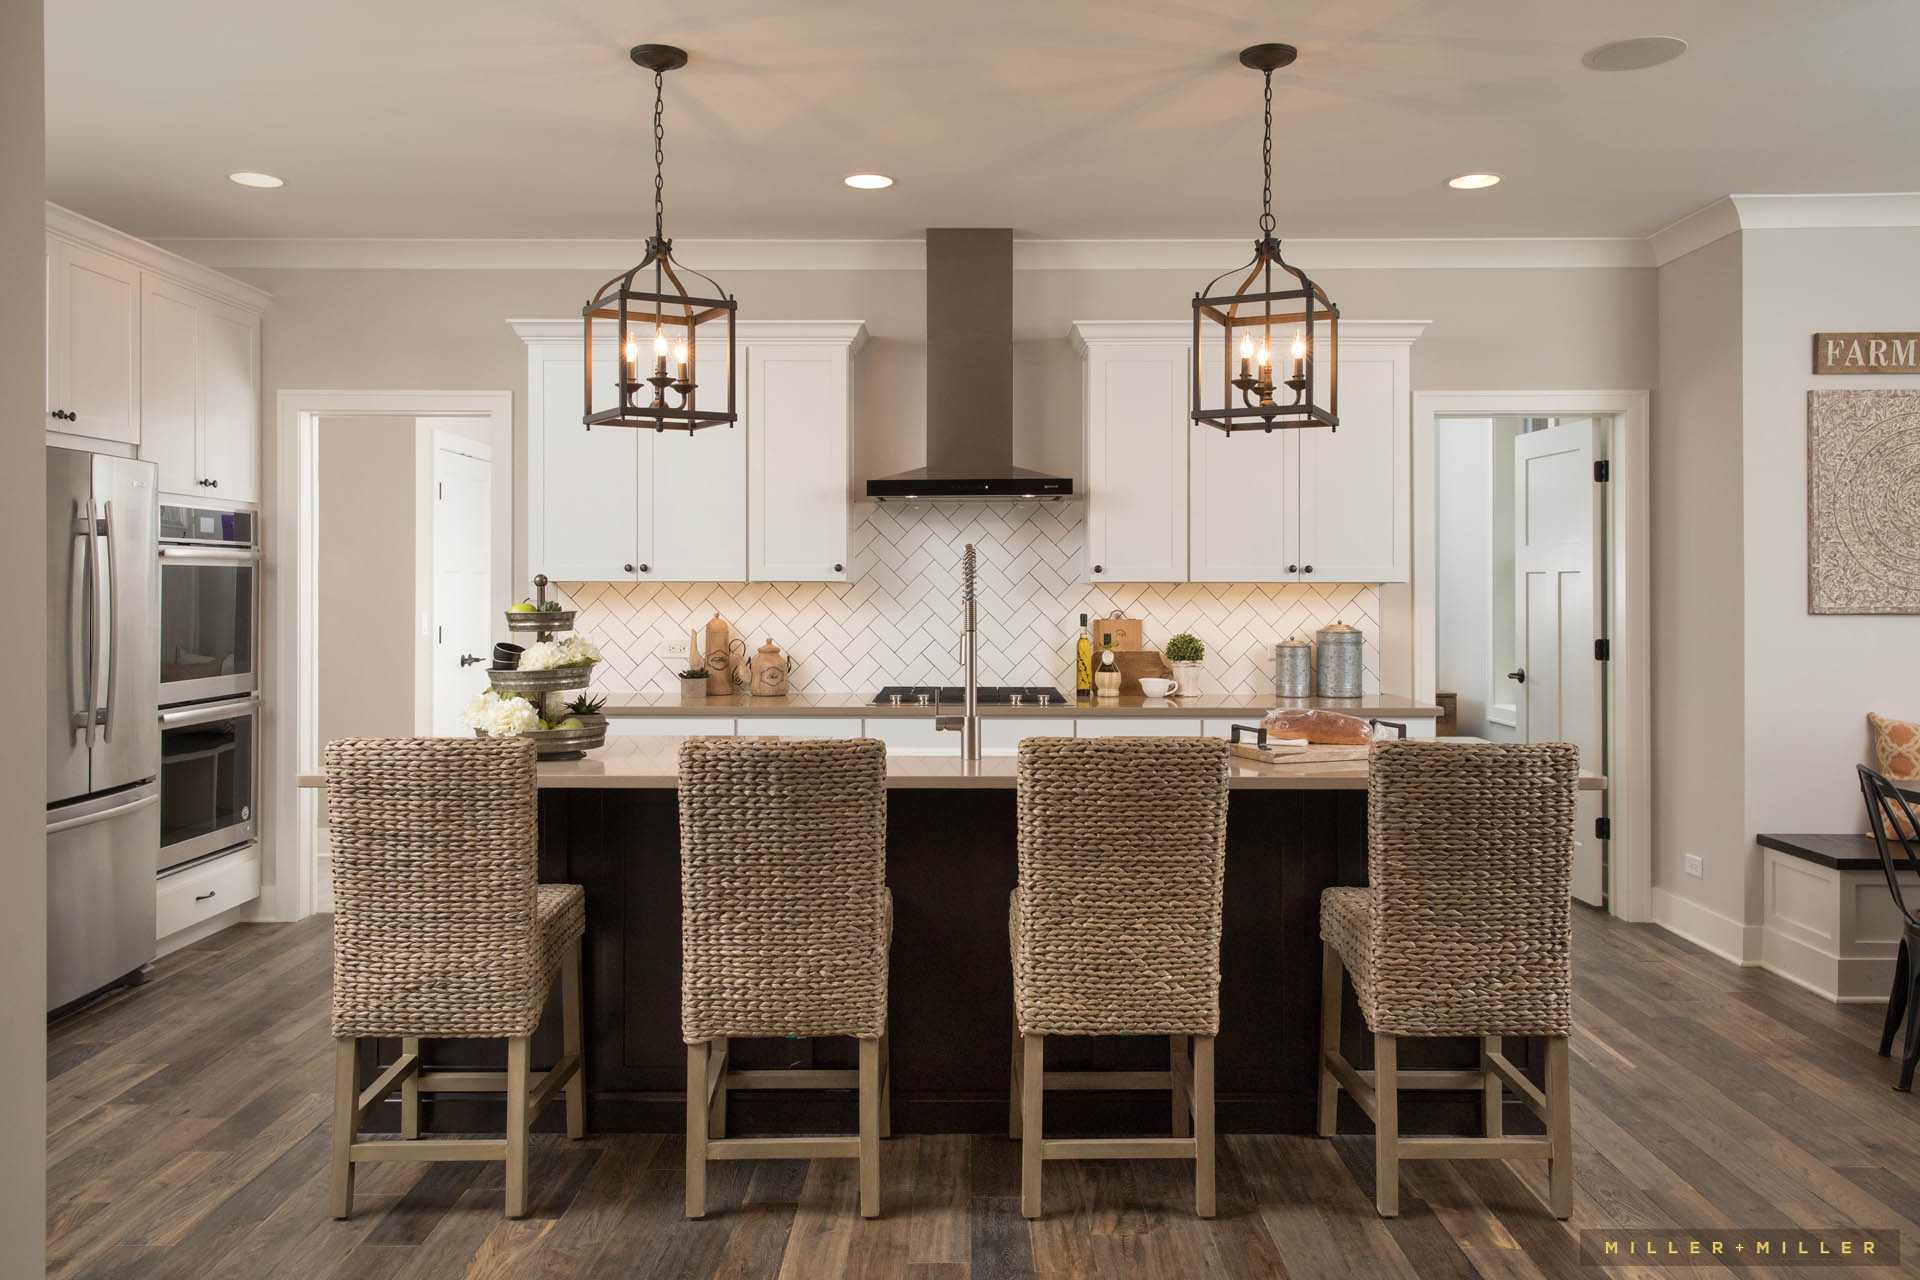 Farm Kitchen Large Pendent Lighting